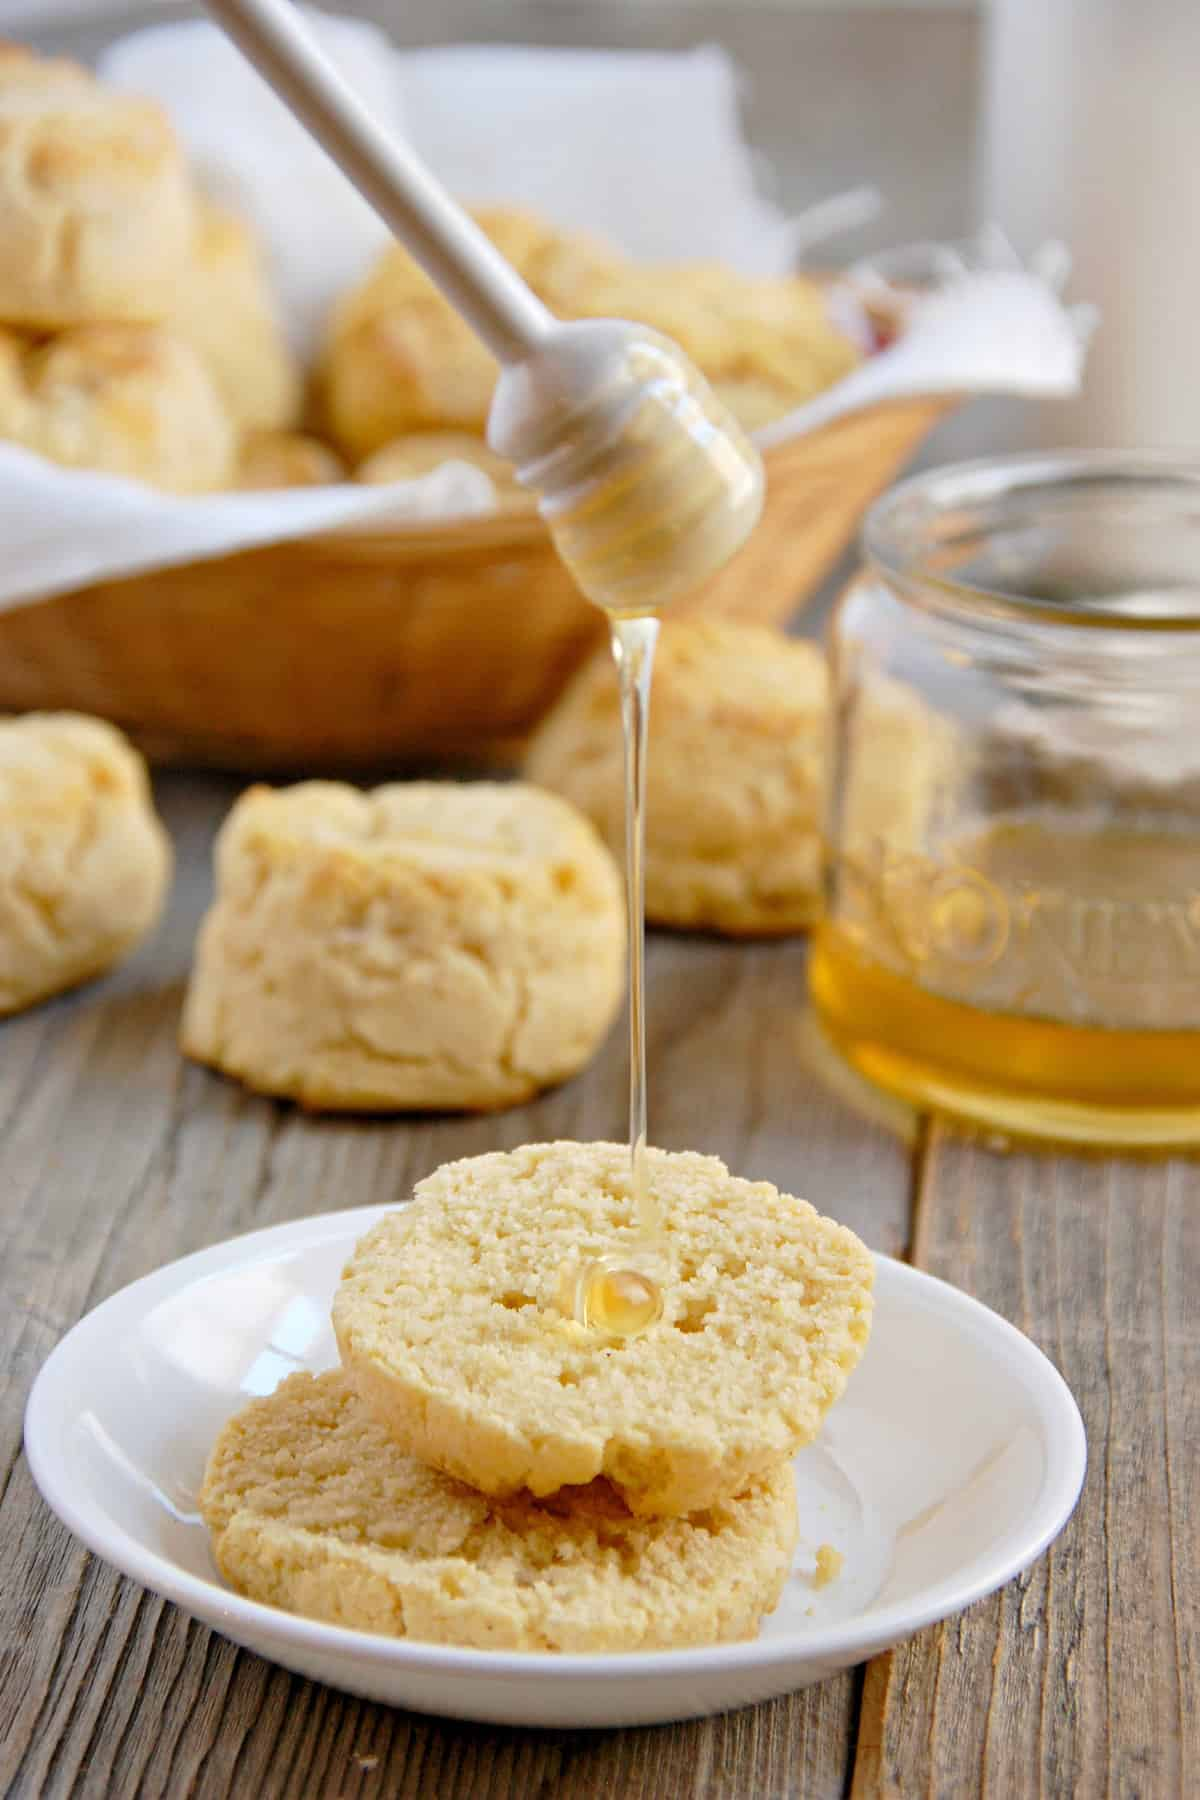 Fluffy Paleo biscuits on a small white plate with honey being drizzled on them and some behind in a basket and a small jar of honey in the background.